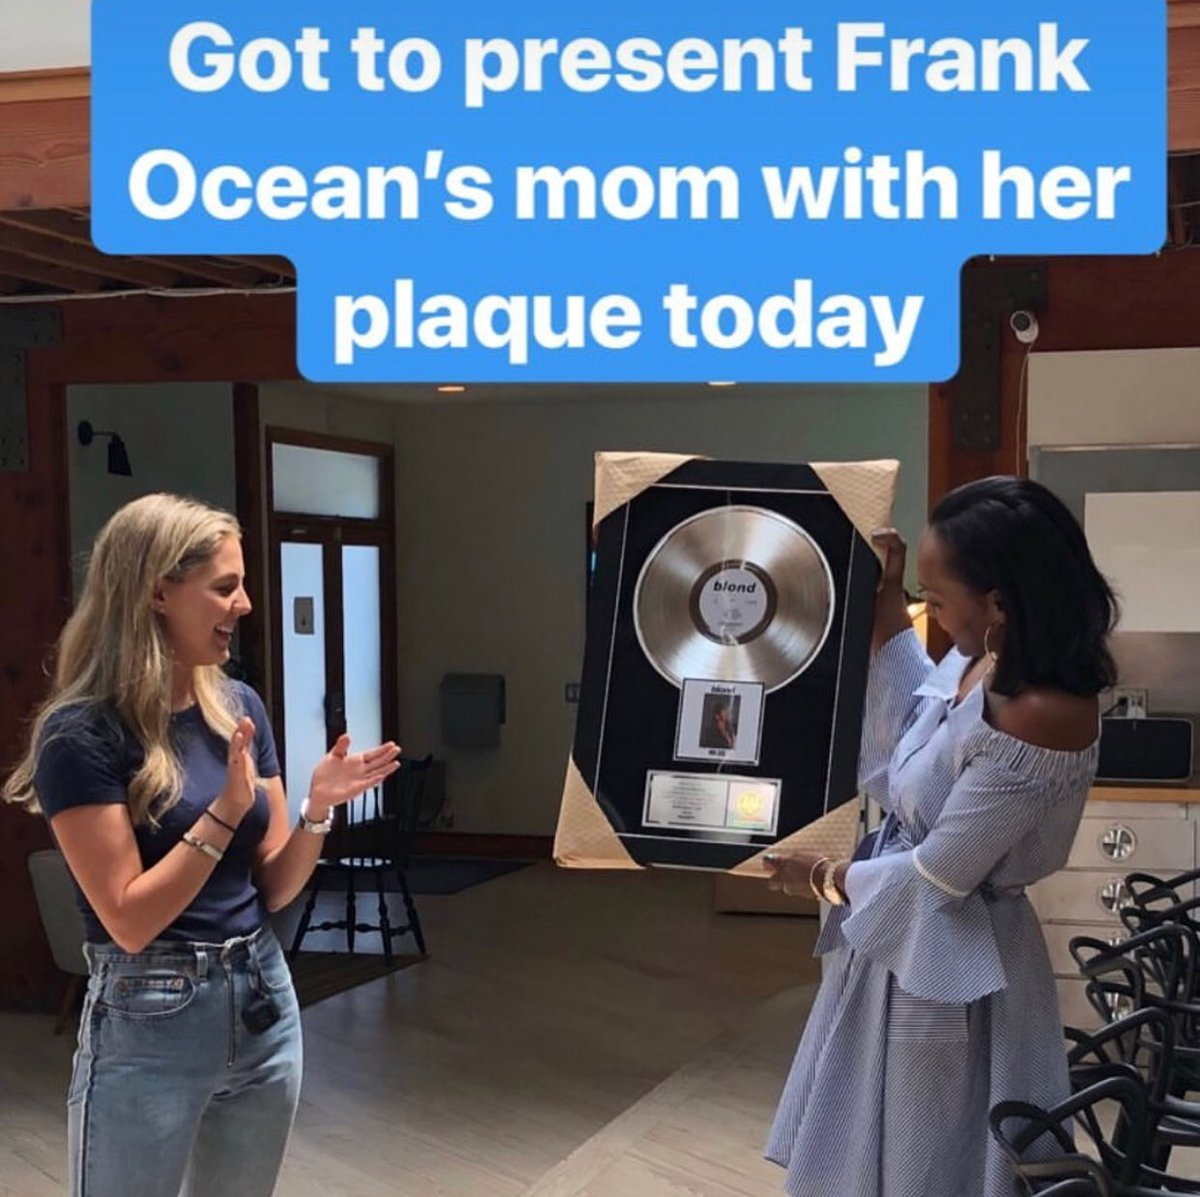 Yesterday @katonya accepted the platinum record for Blonde on behalf of her son at @stem. Congrats!!!  https://www. instagram.com/p/BmkaxmcFqaw/  &nbsp;  <br>http://pic.twitter.com/eDEkU0i2VR